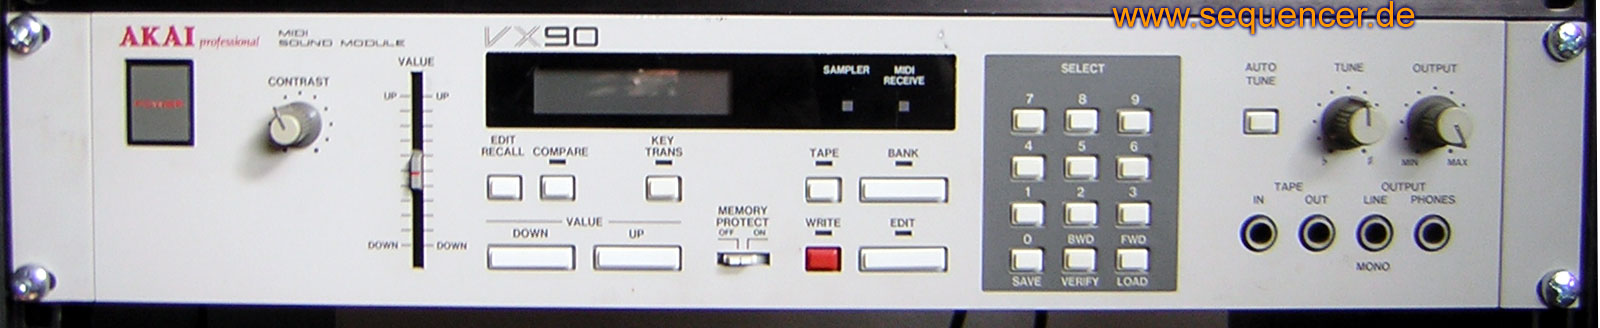 Akai AX73, VX90 synthesizer